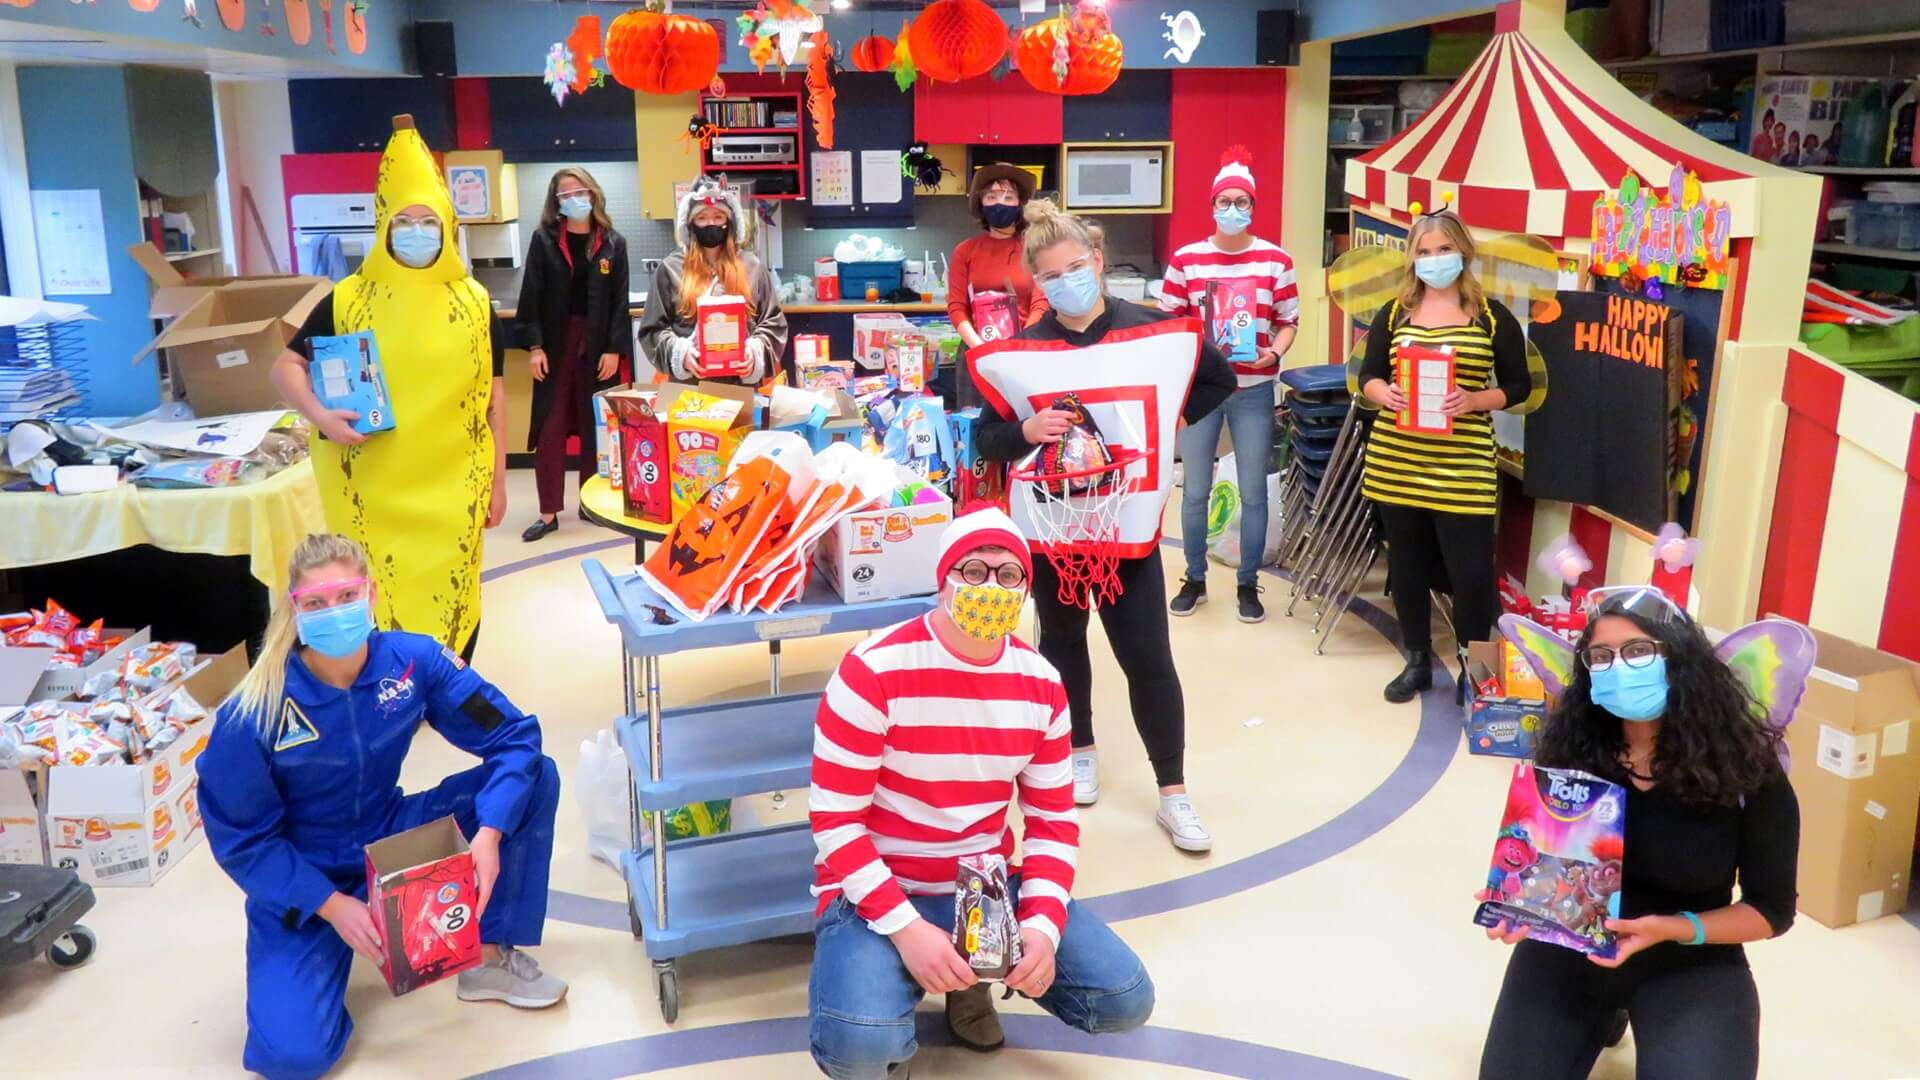 Intrepid Child Life team and medical student volunteers safely deliver Halloween fun to kids in hospital